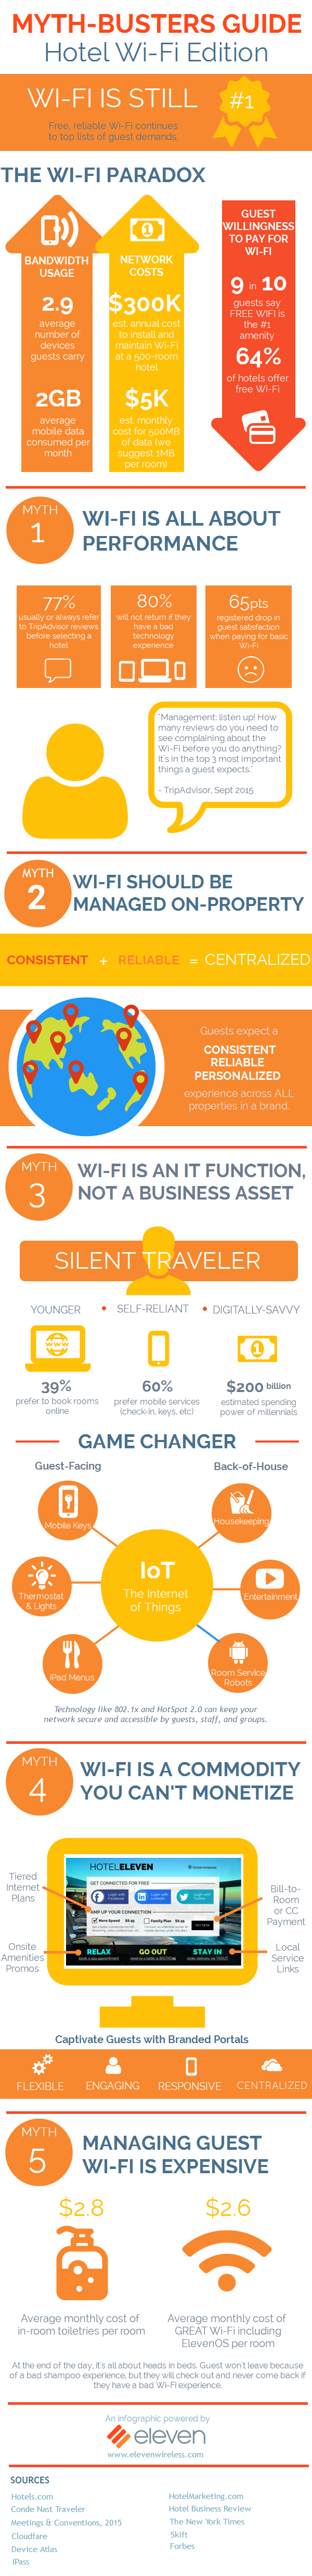 Myth-busters_Guide_Hotel_Wi-Fi_Edition_Infographic.png